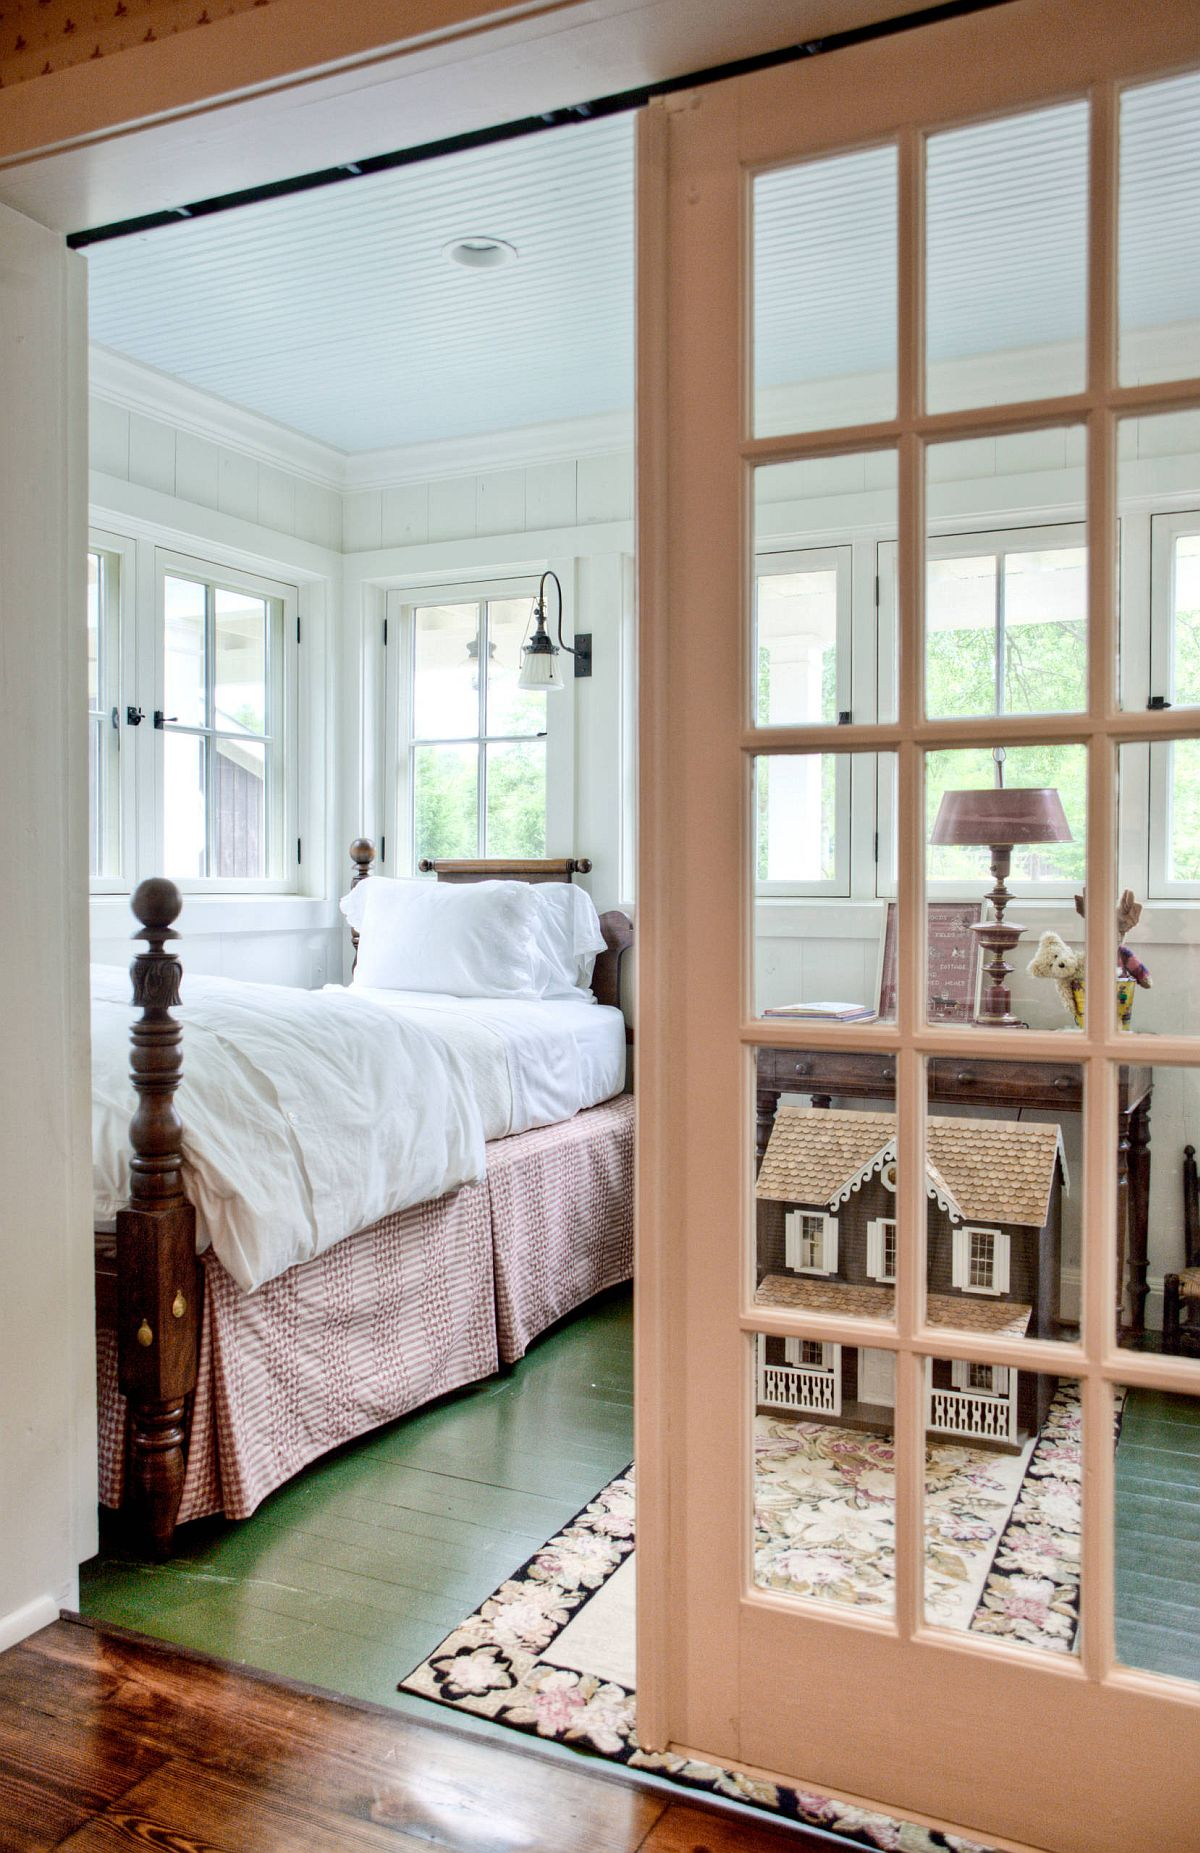 Gorgeous farmhouse bedroom with painted floor in green with white and wood all around